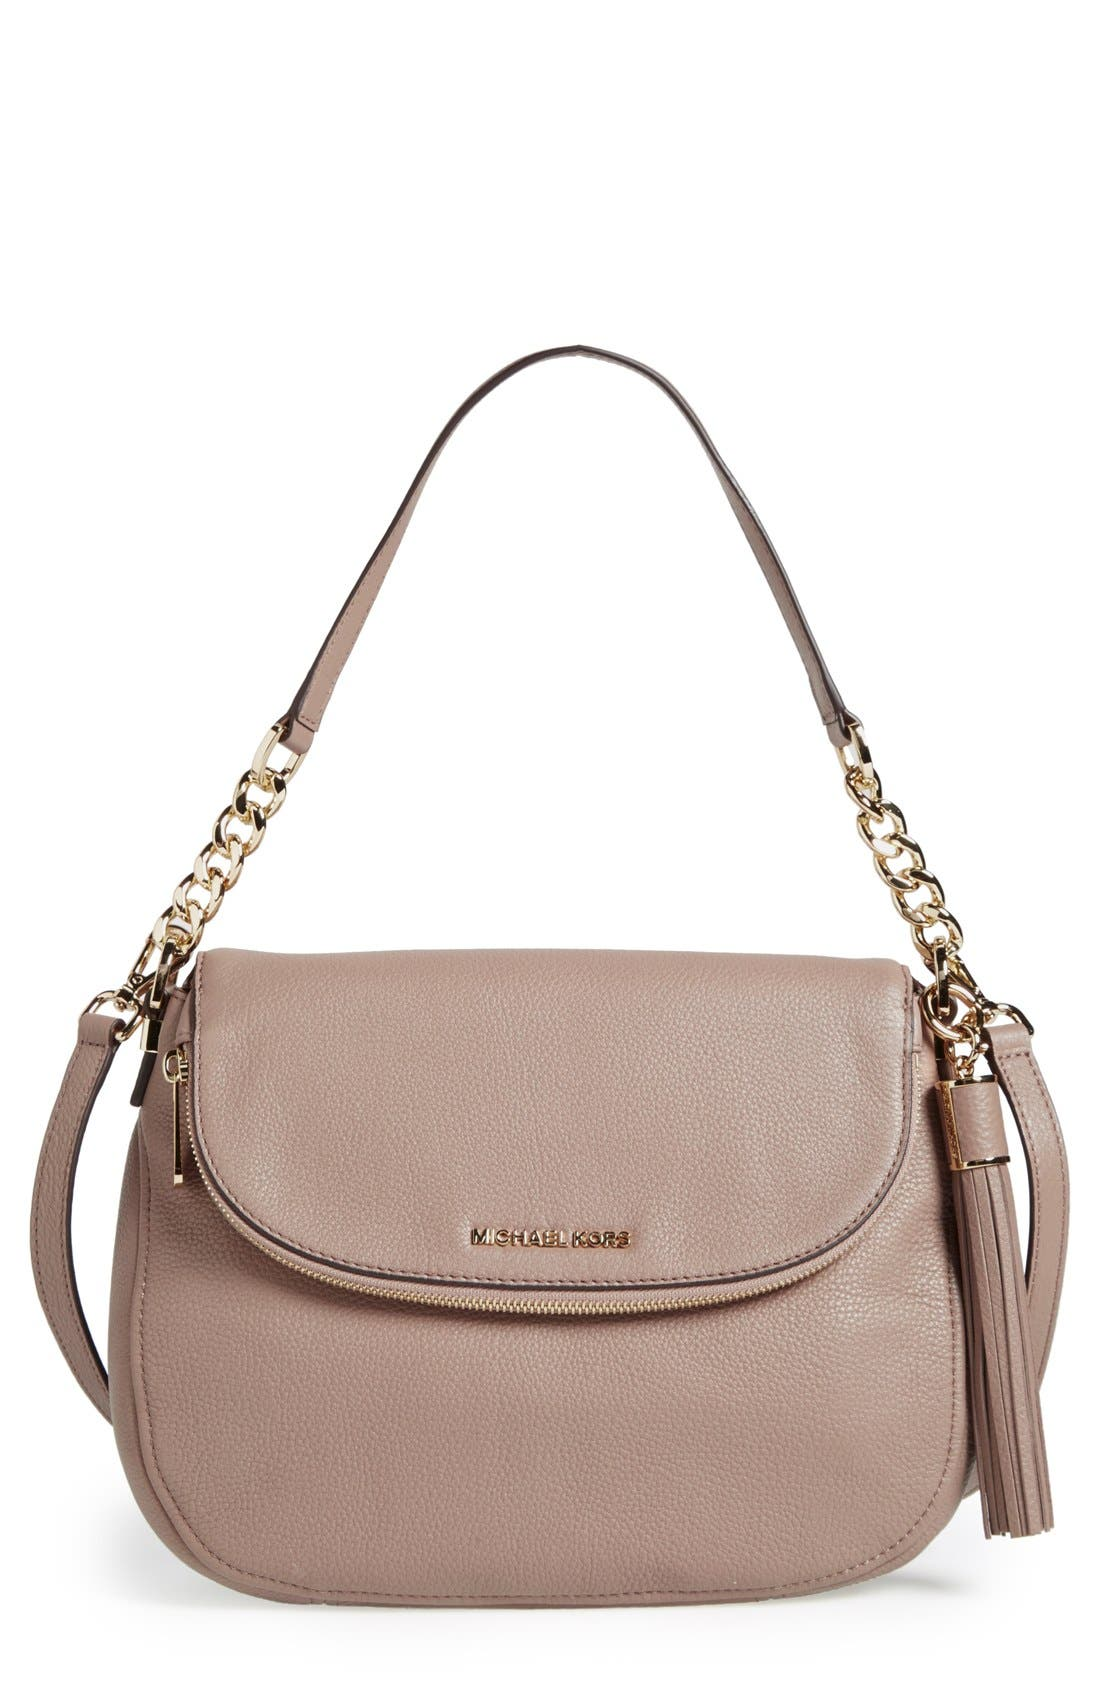 Alternate Image 1 Selected - MICHAEL Michael Kors 'Bedford Tassel - Medium' Convertible Leather Shoulder Bag (Nordstrom Exclusive)